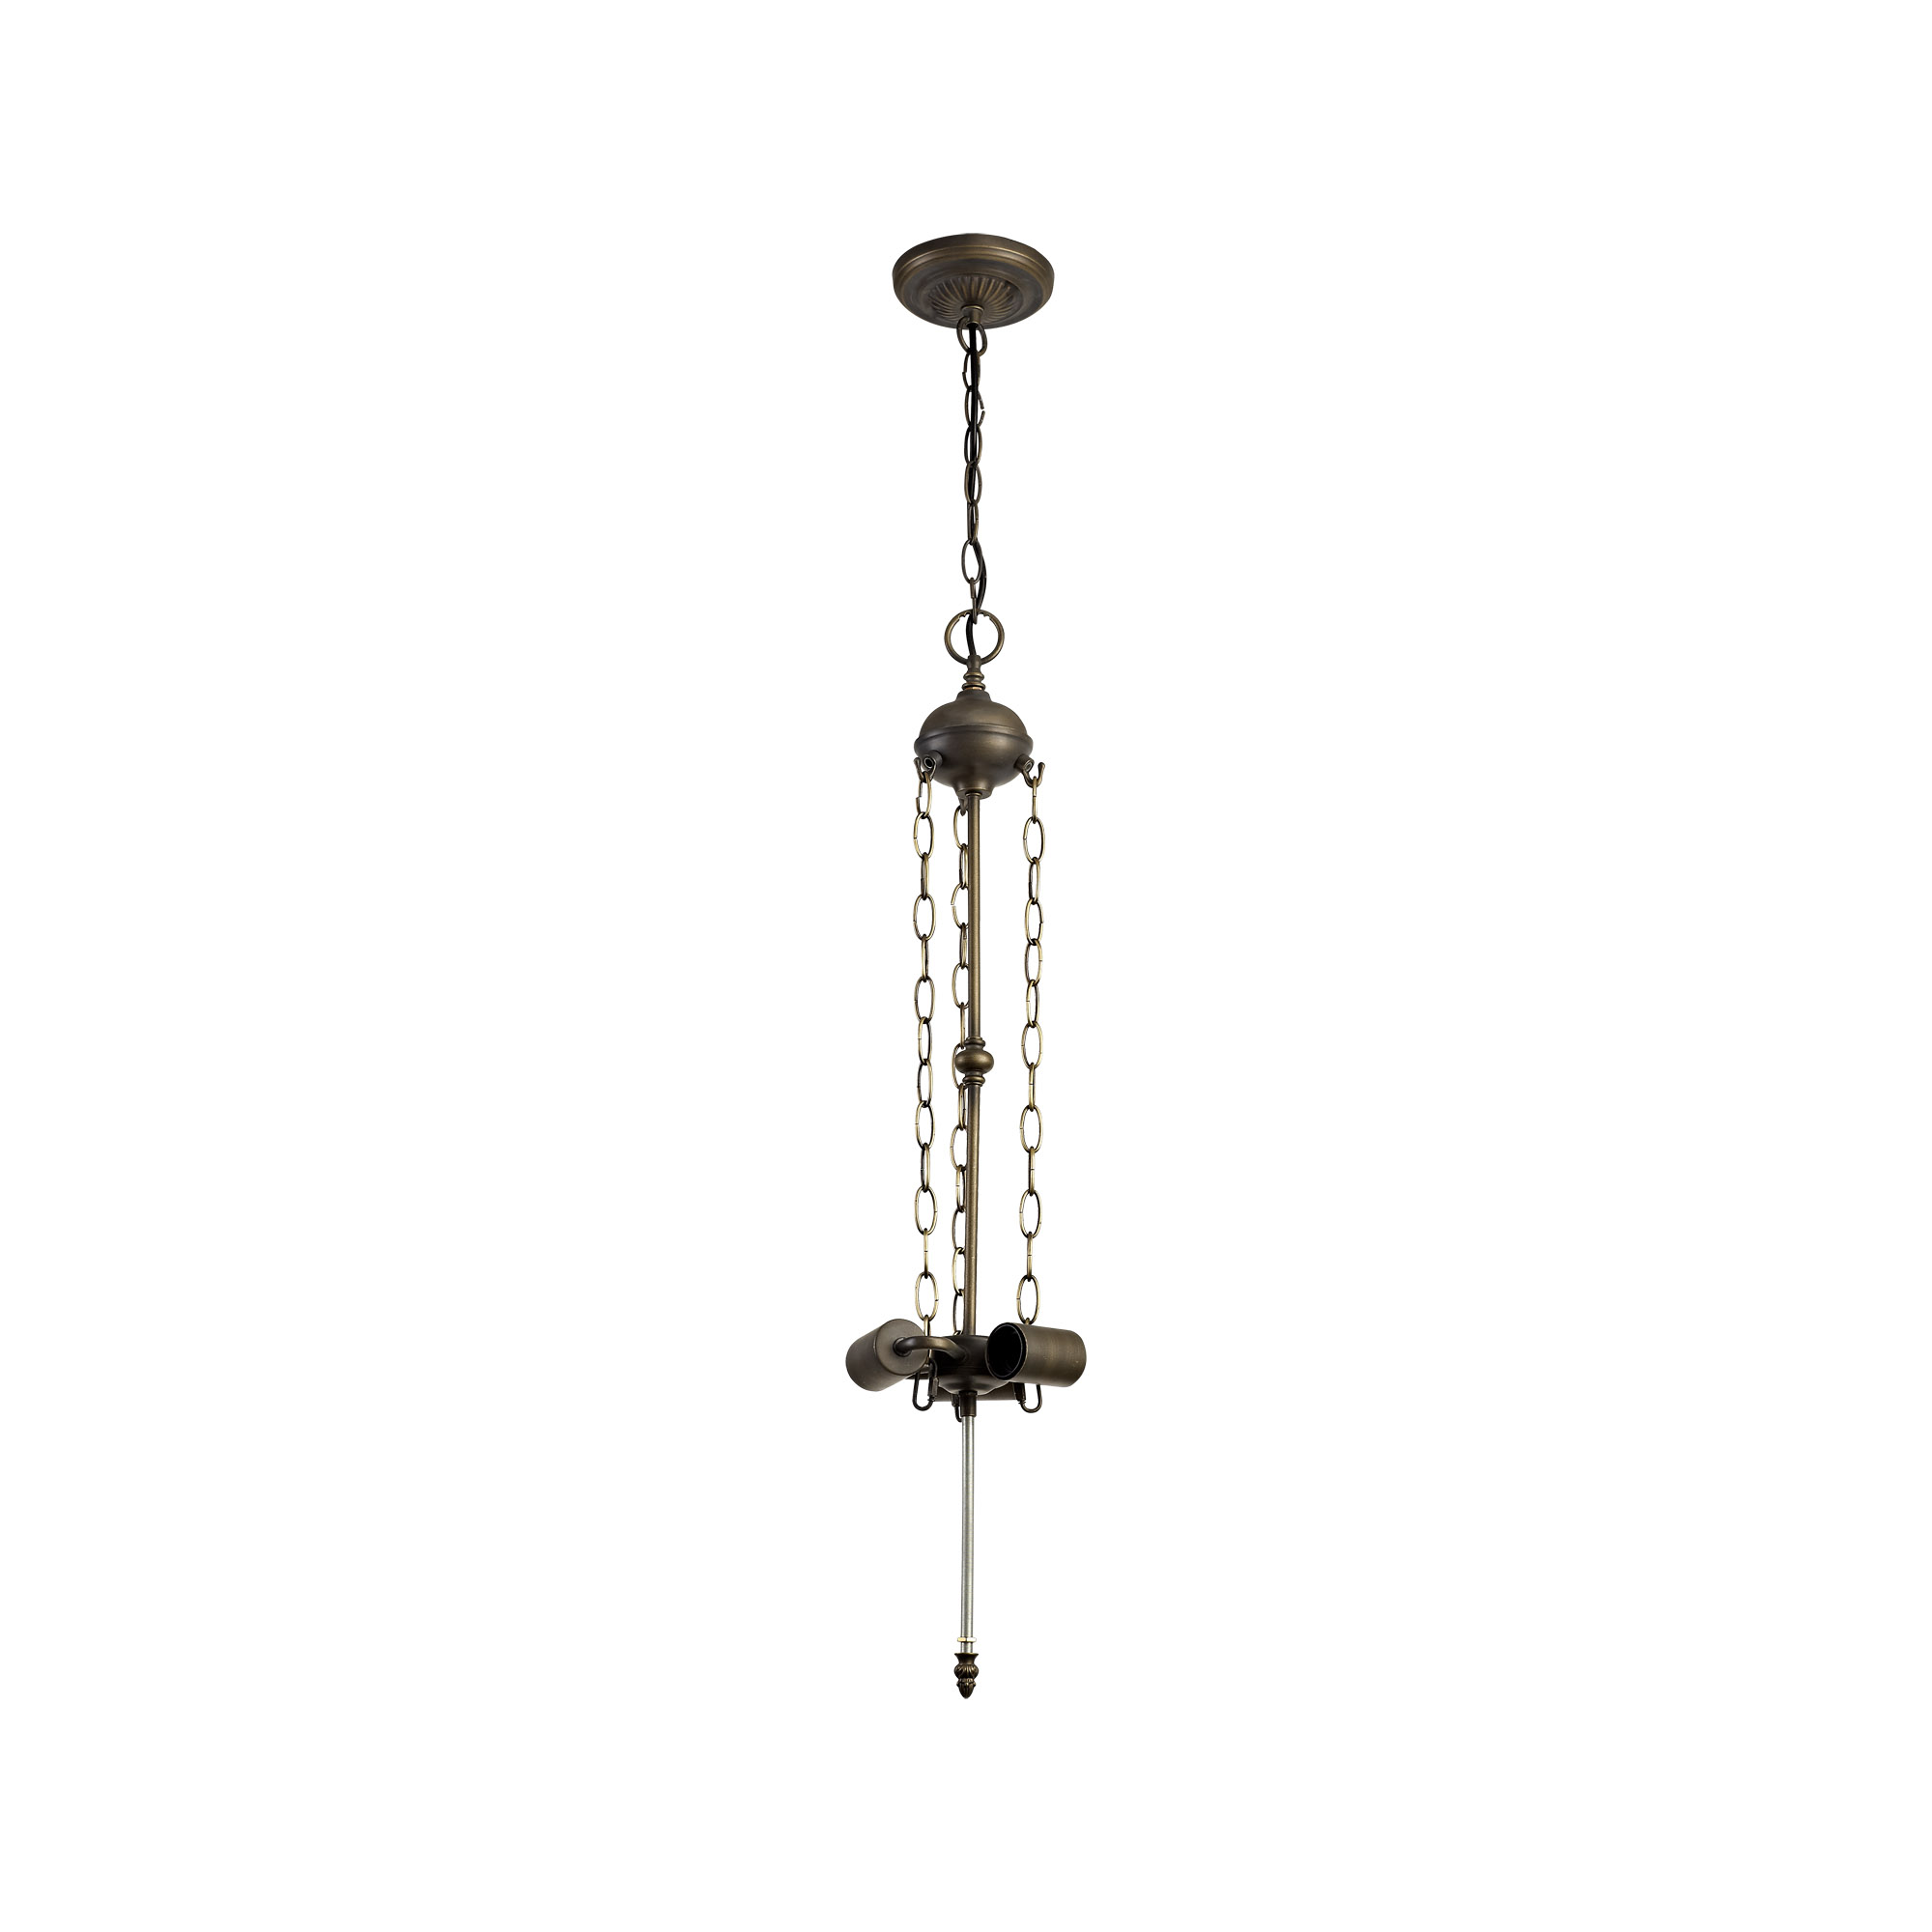 3 Light Uplighter Pendant E27 With 30cm Tiffany Shade, White/Grey/Black/Clear Crystal/Aged Antique Brass